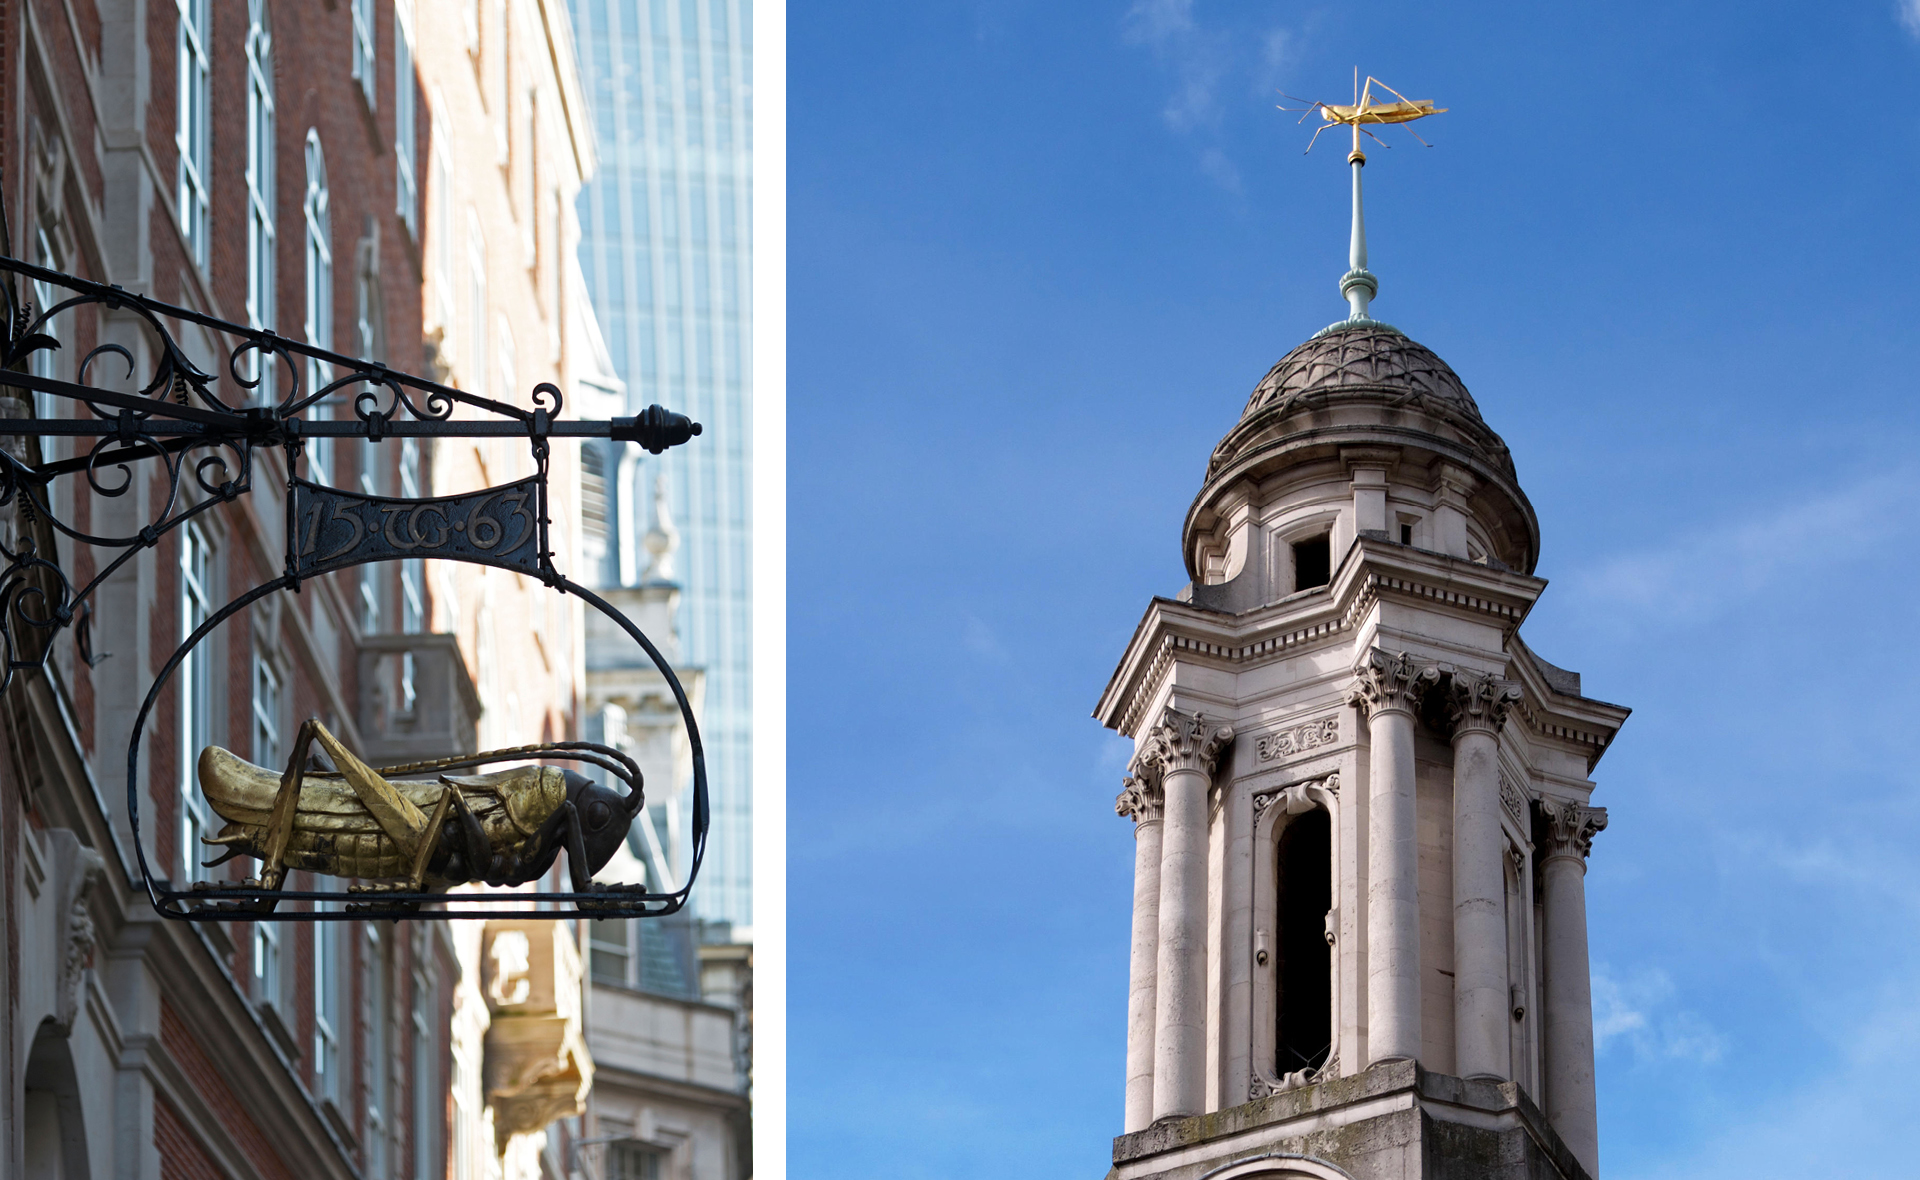 The Gresham grasshopper on Lombard Street (left) and atop The Royal Exchange (right)